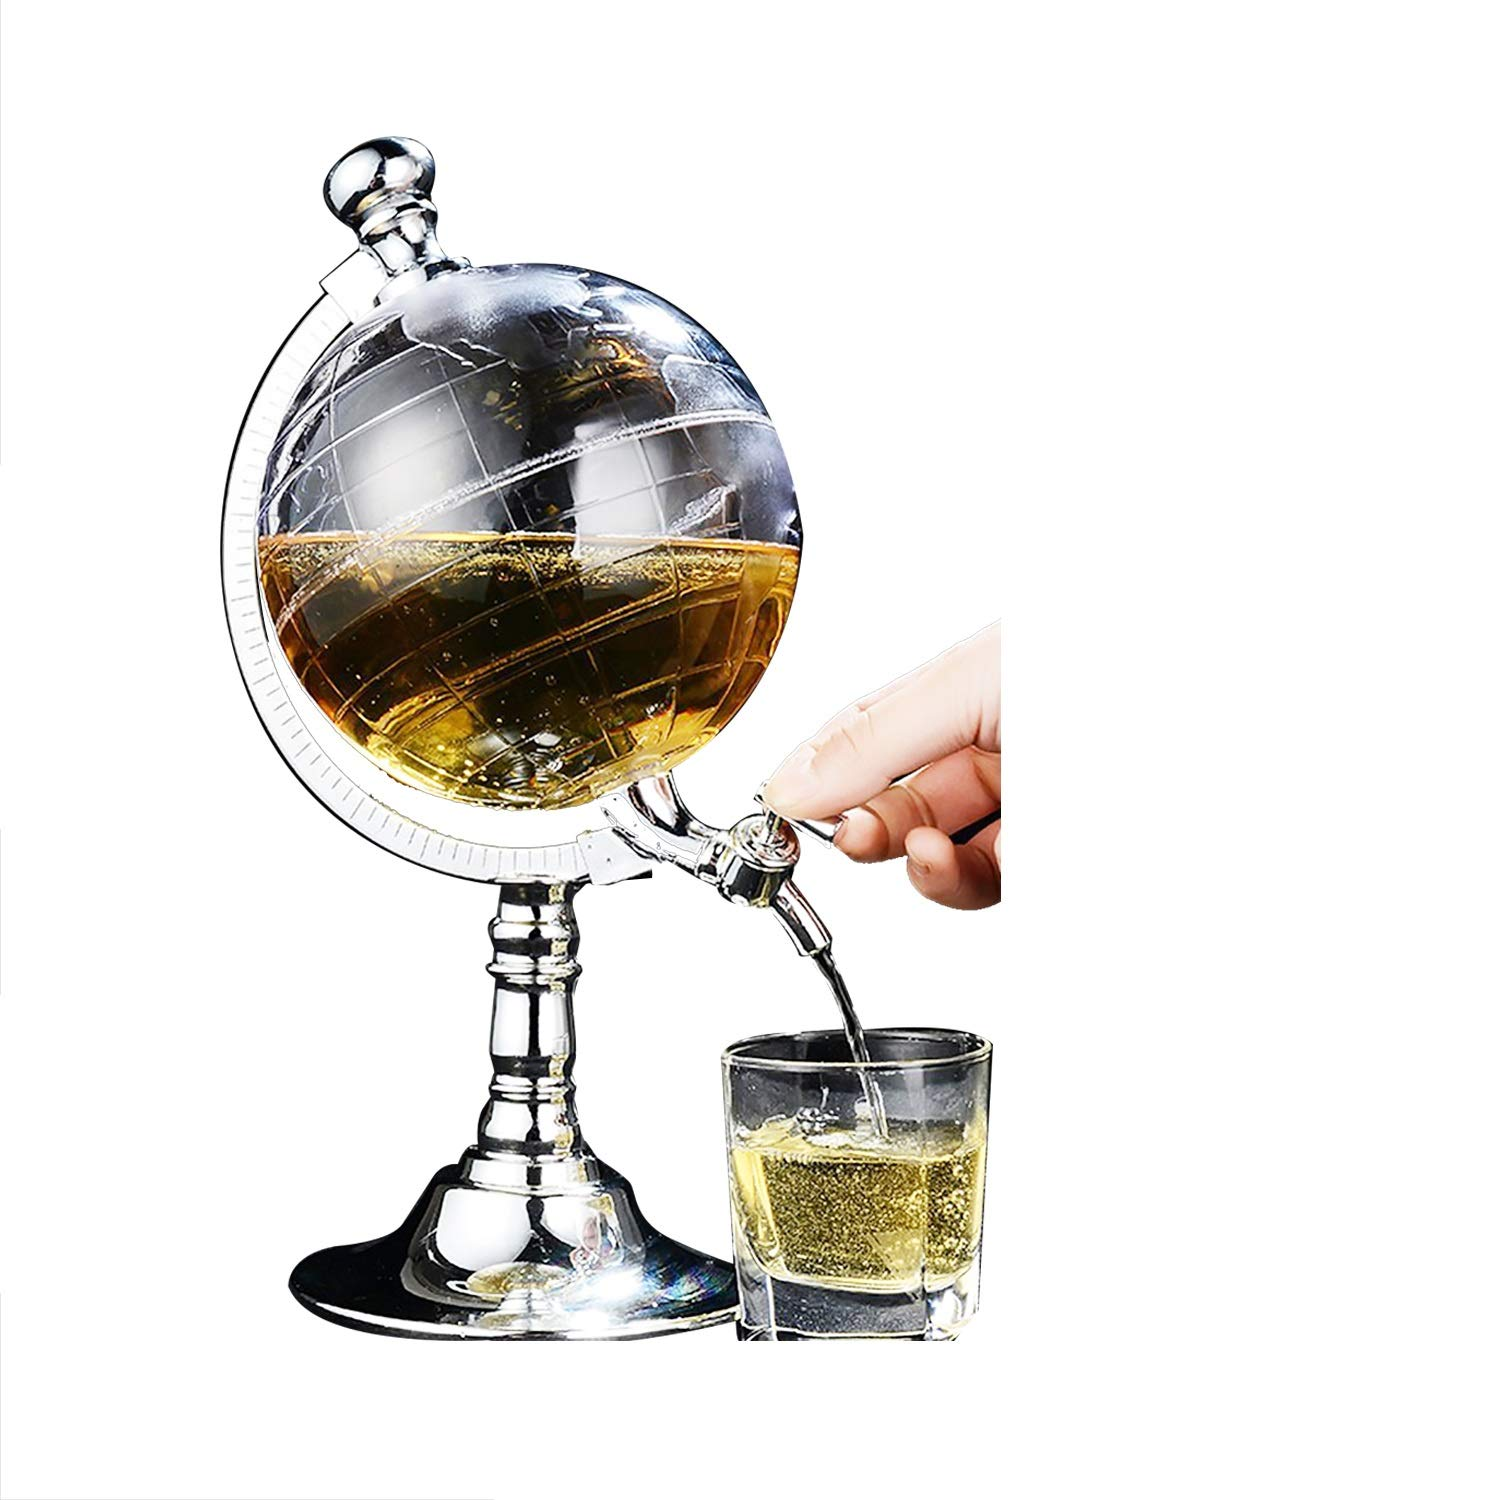 YaeBrew Whiskey Decanter Globe - Liquor Decanter for Beer Mini Bar Accessories 52 OZ Liquid Drinking Separate Wine Tools Inverted Wine Rack Water Pump Dispenser Machine Gift 1500ml